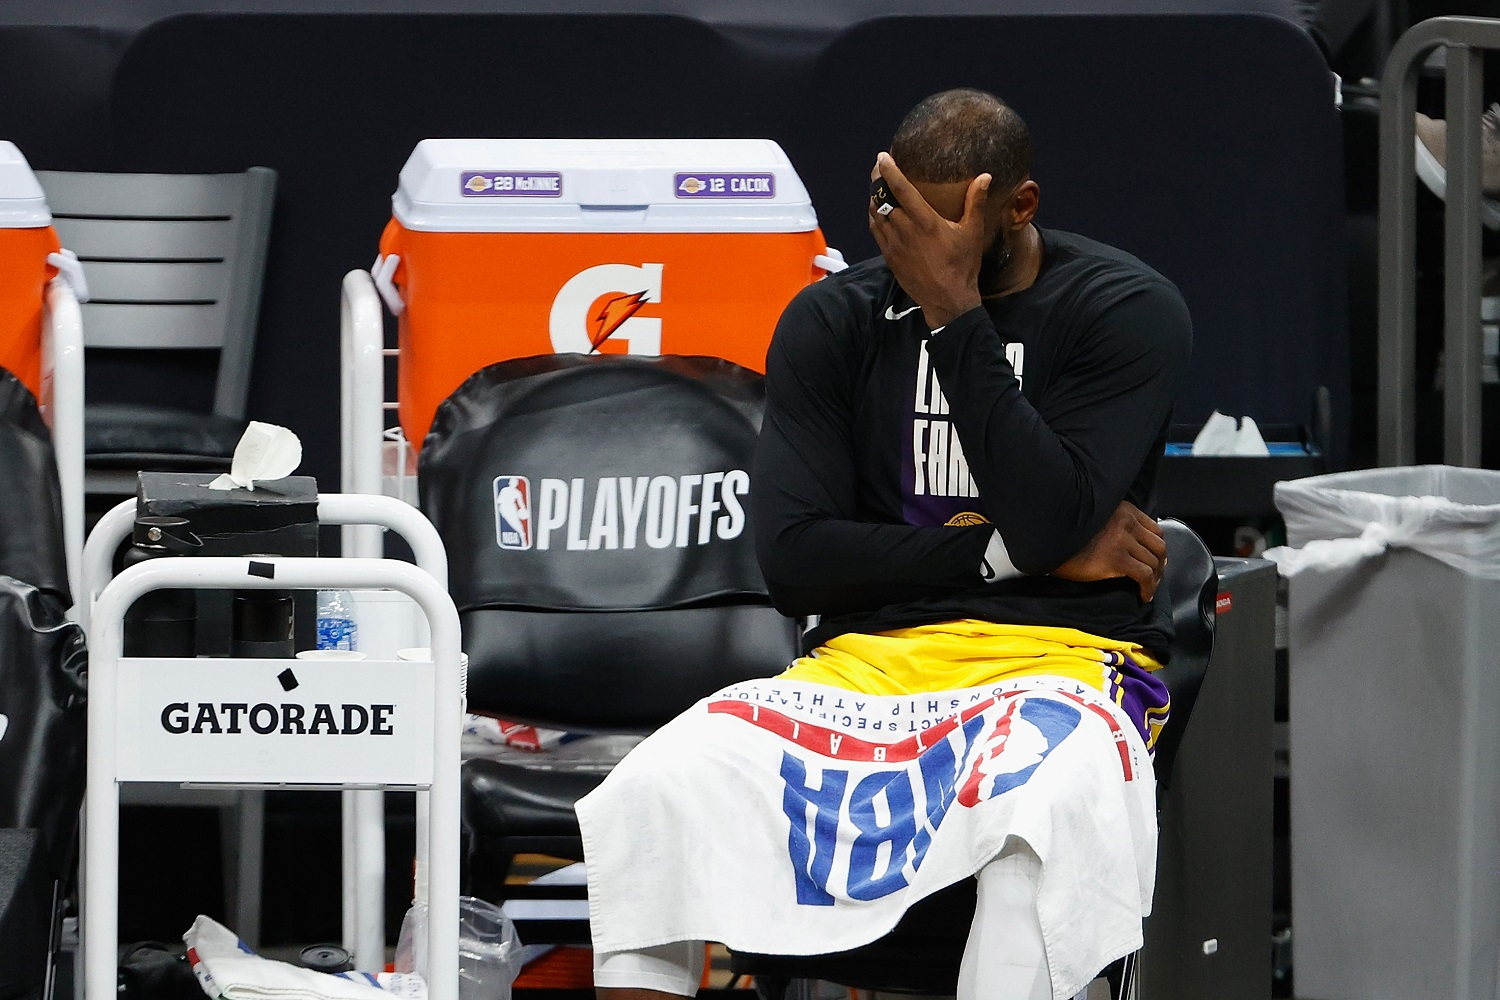 LeBron James reacts on the bench during the second half in Game 5 of the Western Conference quarterfinals against the Phoenix Suns Arena. | Christian Petersen/Getty Images